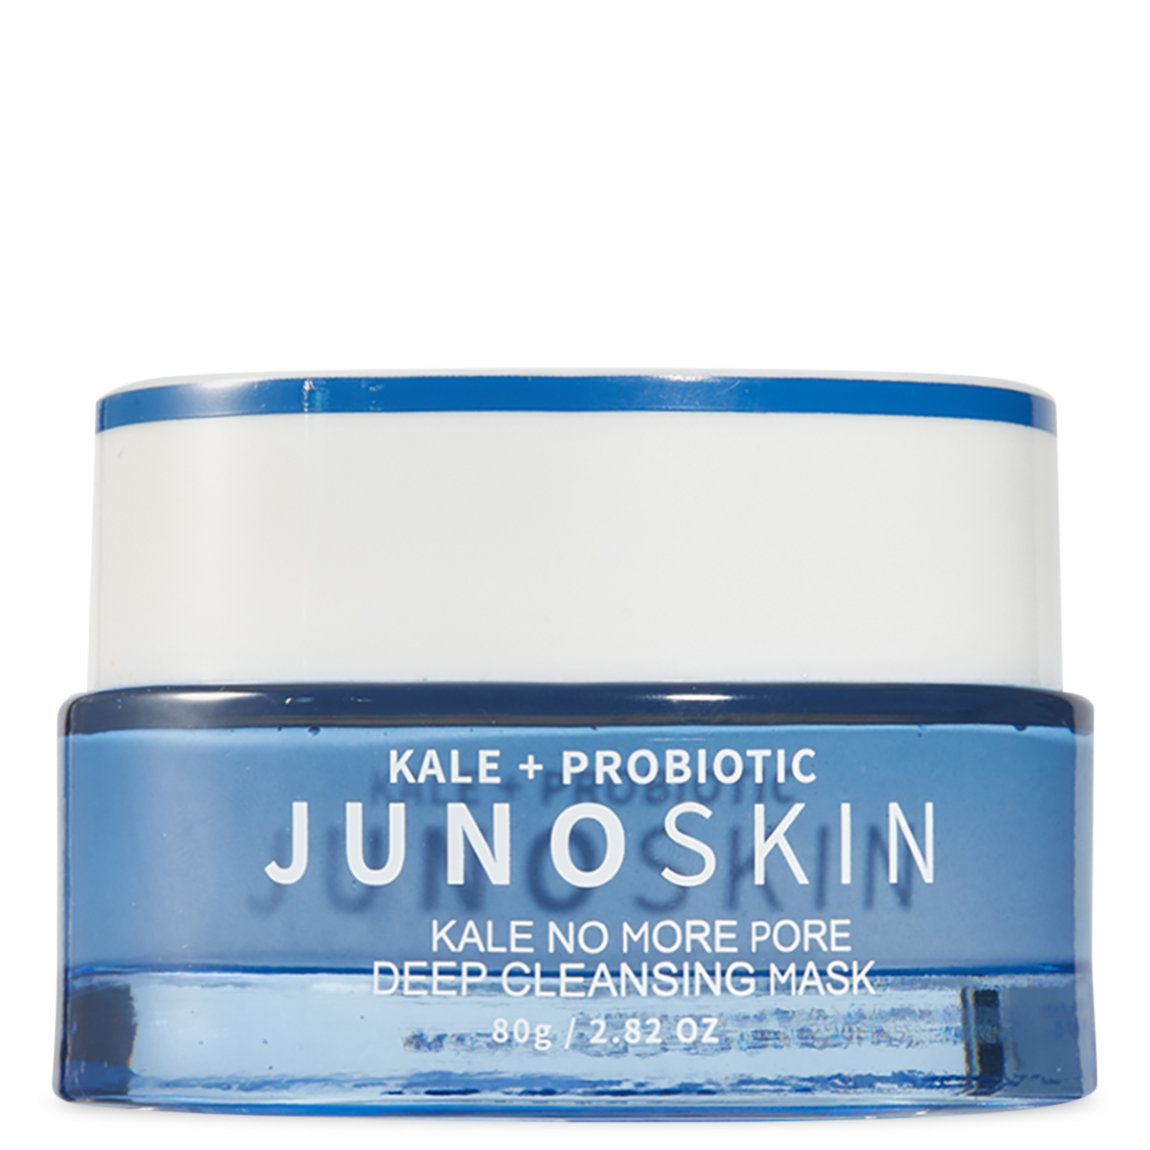 JUNO & Co. Kale No More Pore Clay Mask alternative view 1 - product swatch.